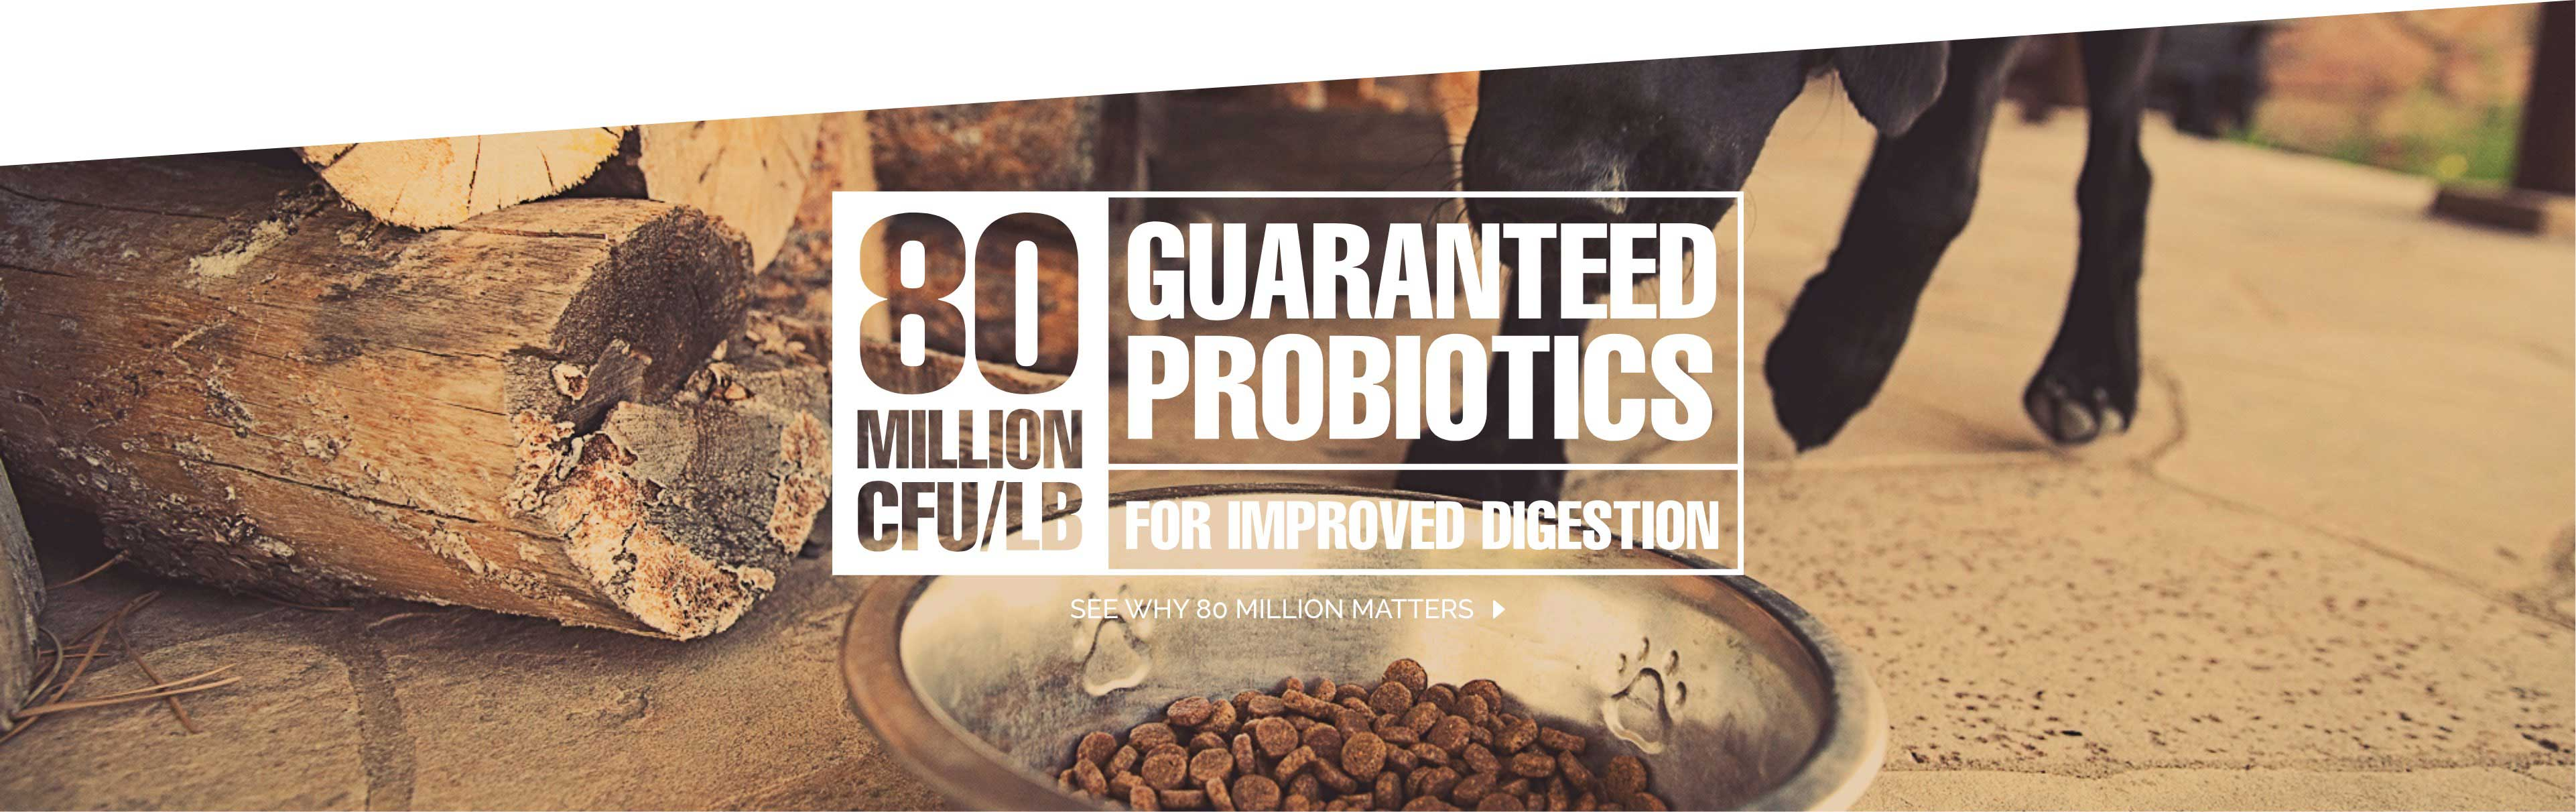 80 Guaranteed Probiotics